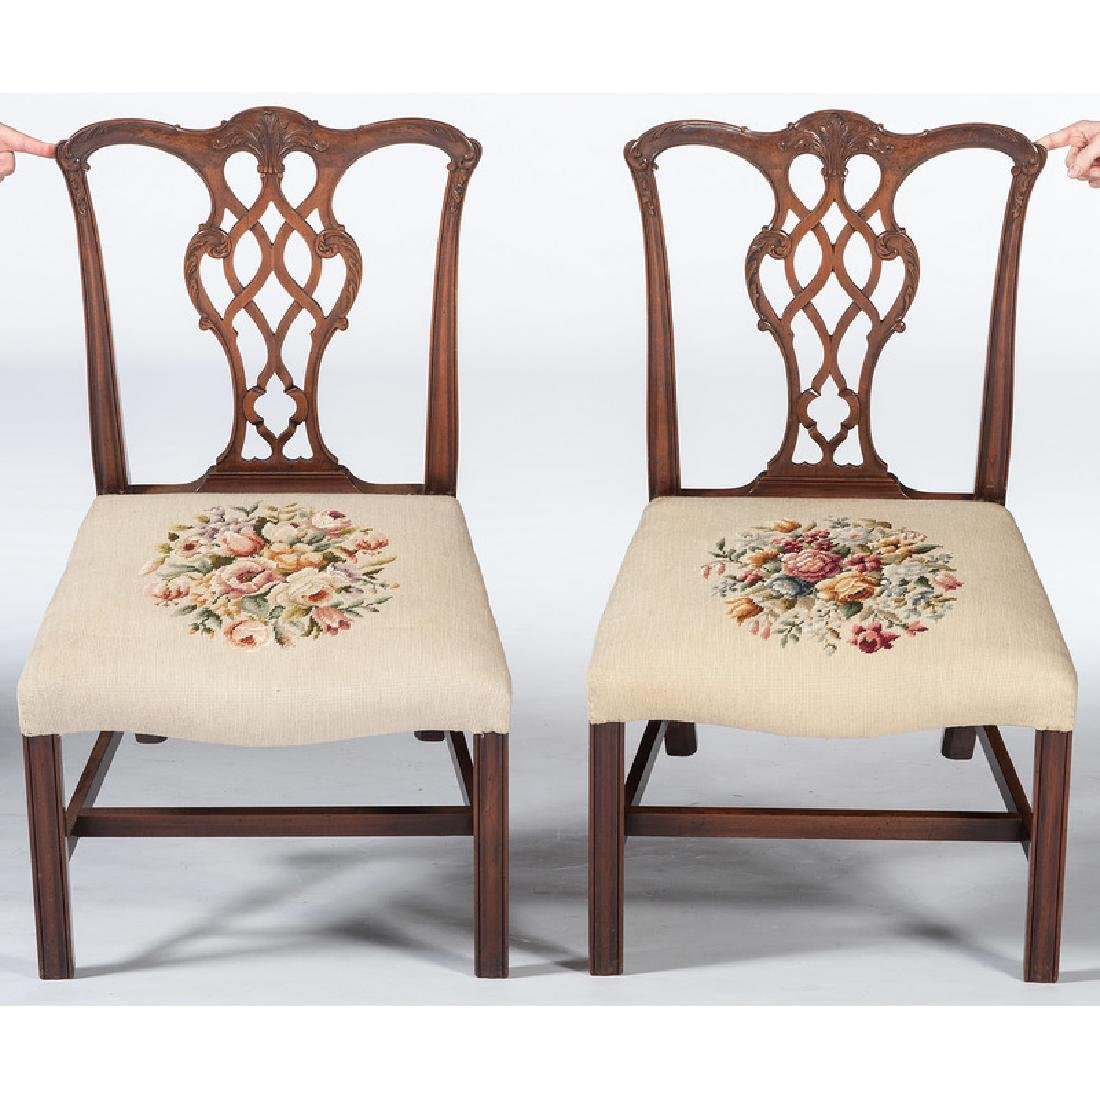 Chippendale-style Dining Chairs - 2